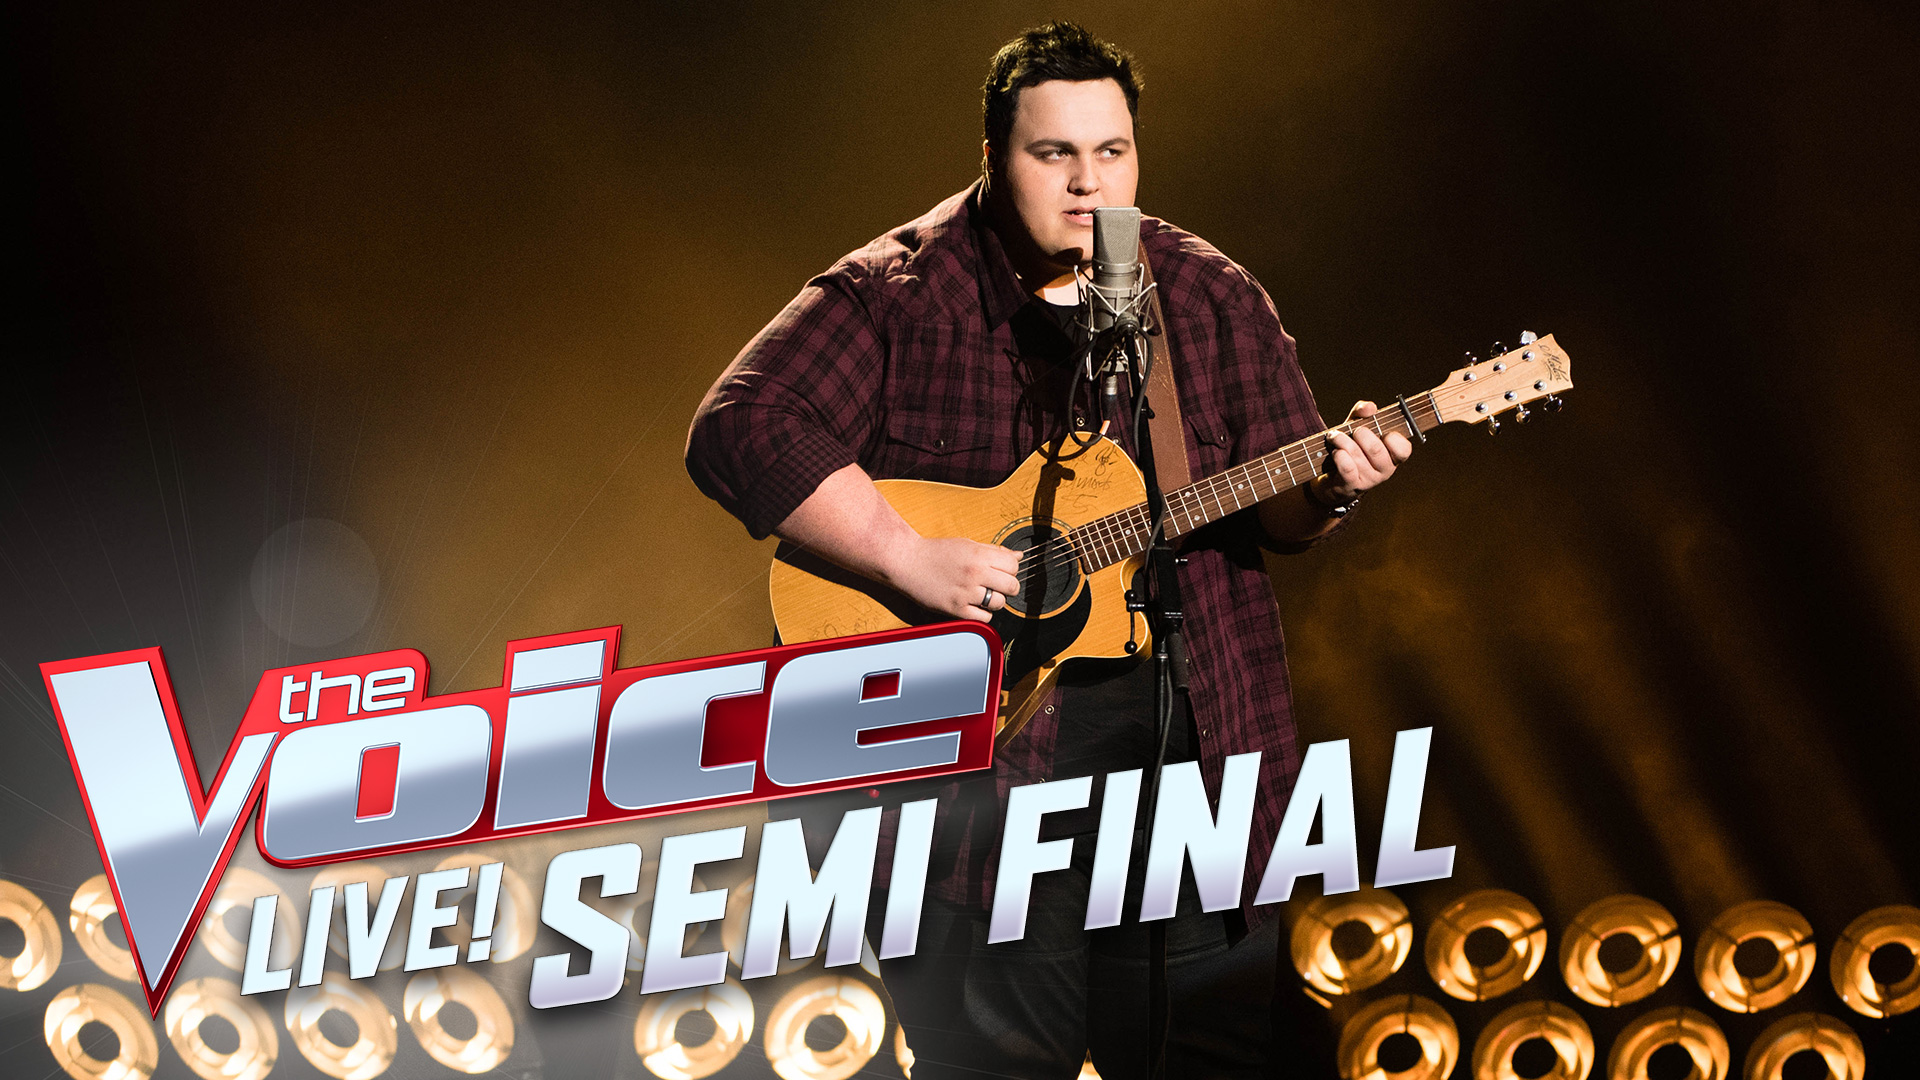 Semi Final: Judah Kelly - 'Hallelujah'